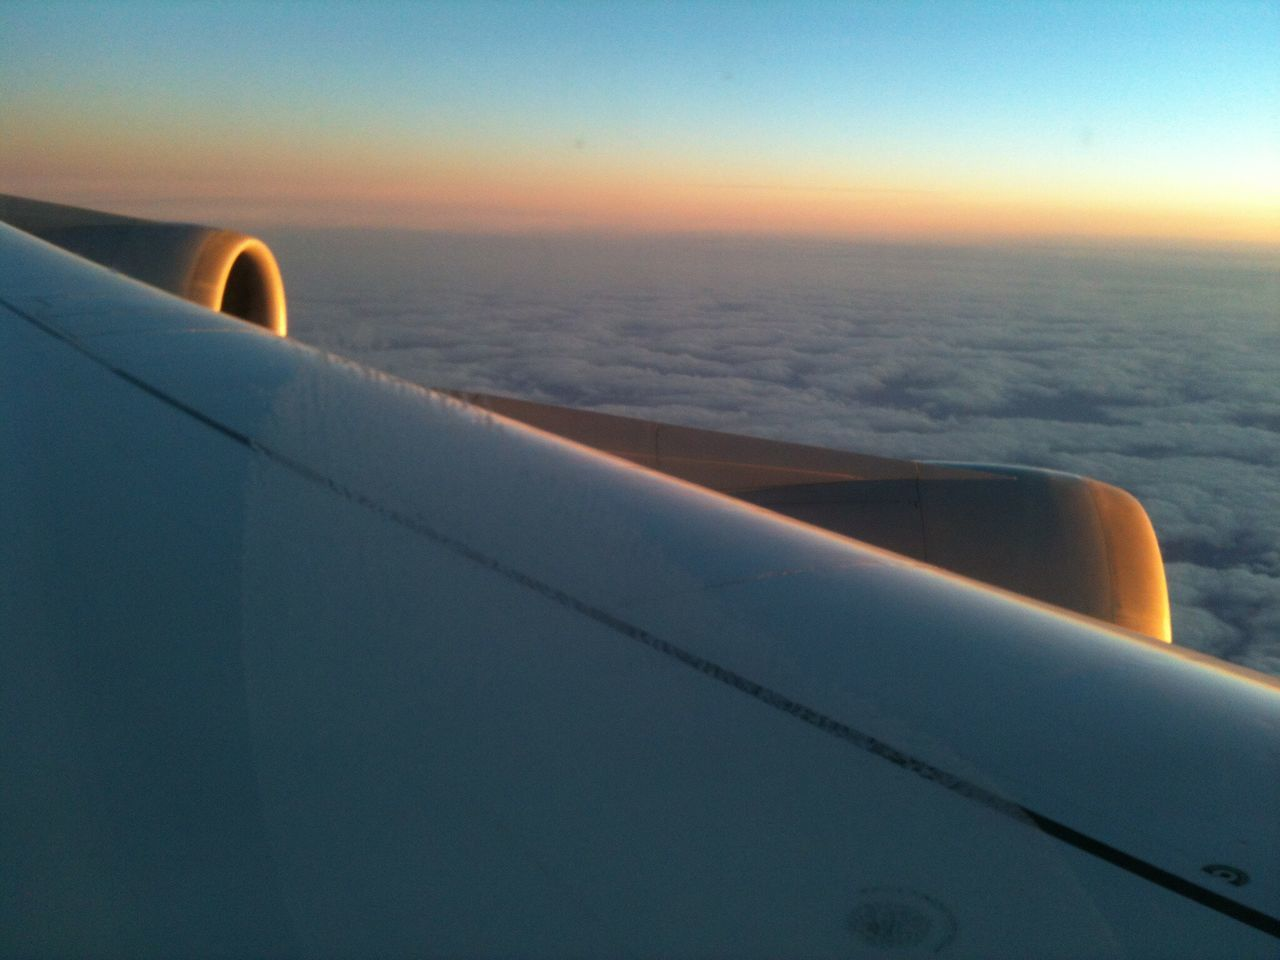 airplane, transportation, mode of transport, air vehicle, journey, travel, sea, no people, aircraft wing, jet engine, airplane wing, aerial view, flying, sunset, vehicle part, day, outdoors, close-up, sky, water, beauty in nature, nature, commercial airplane